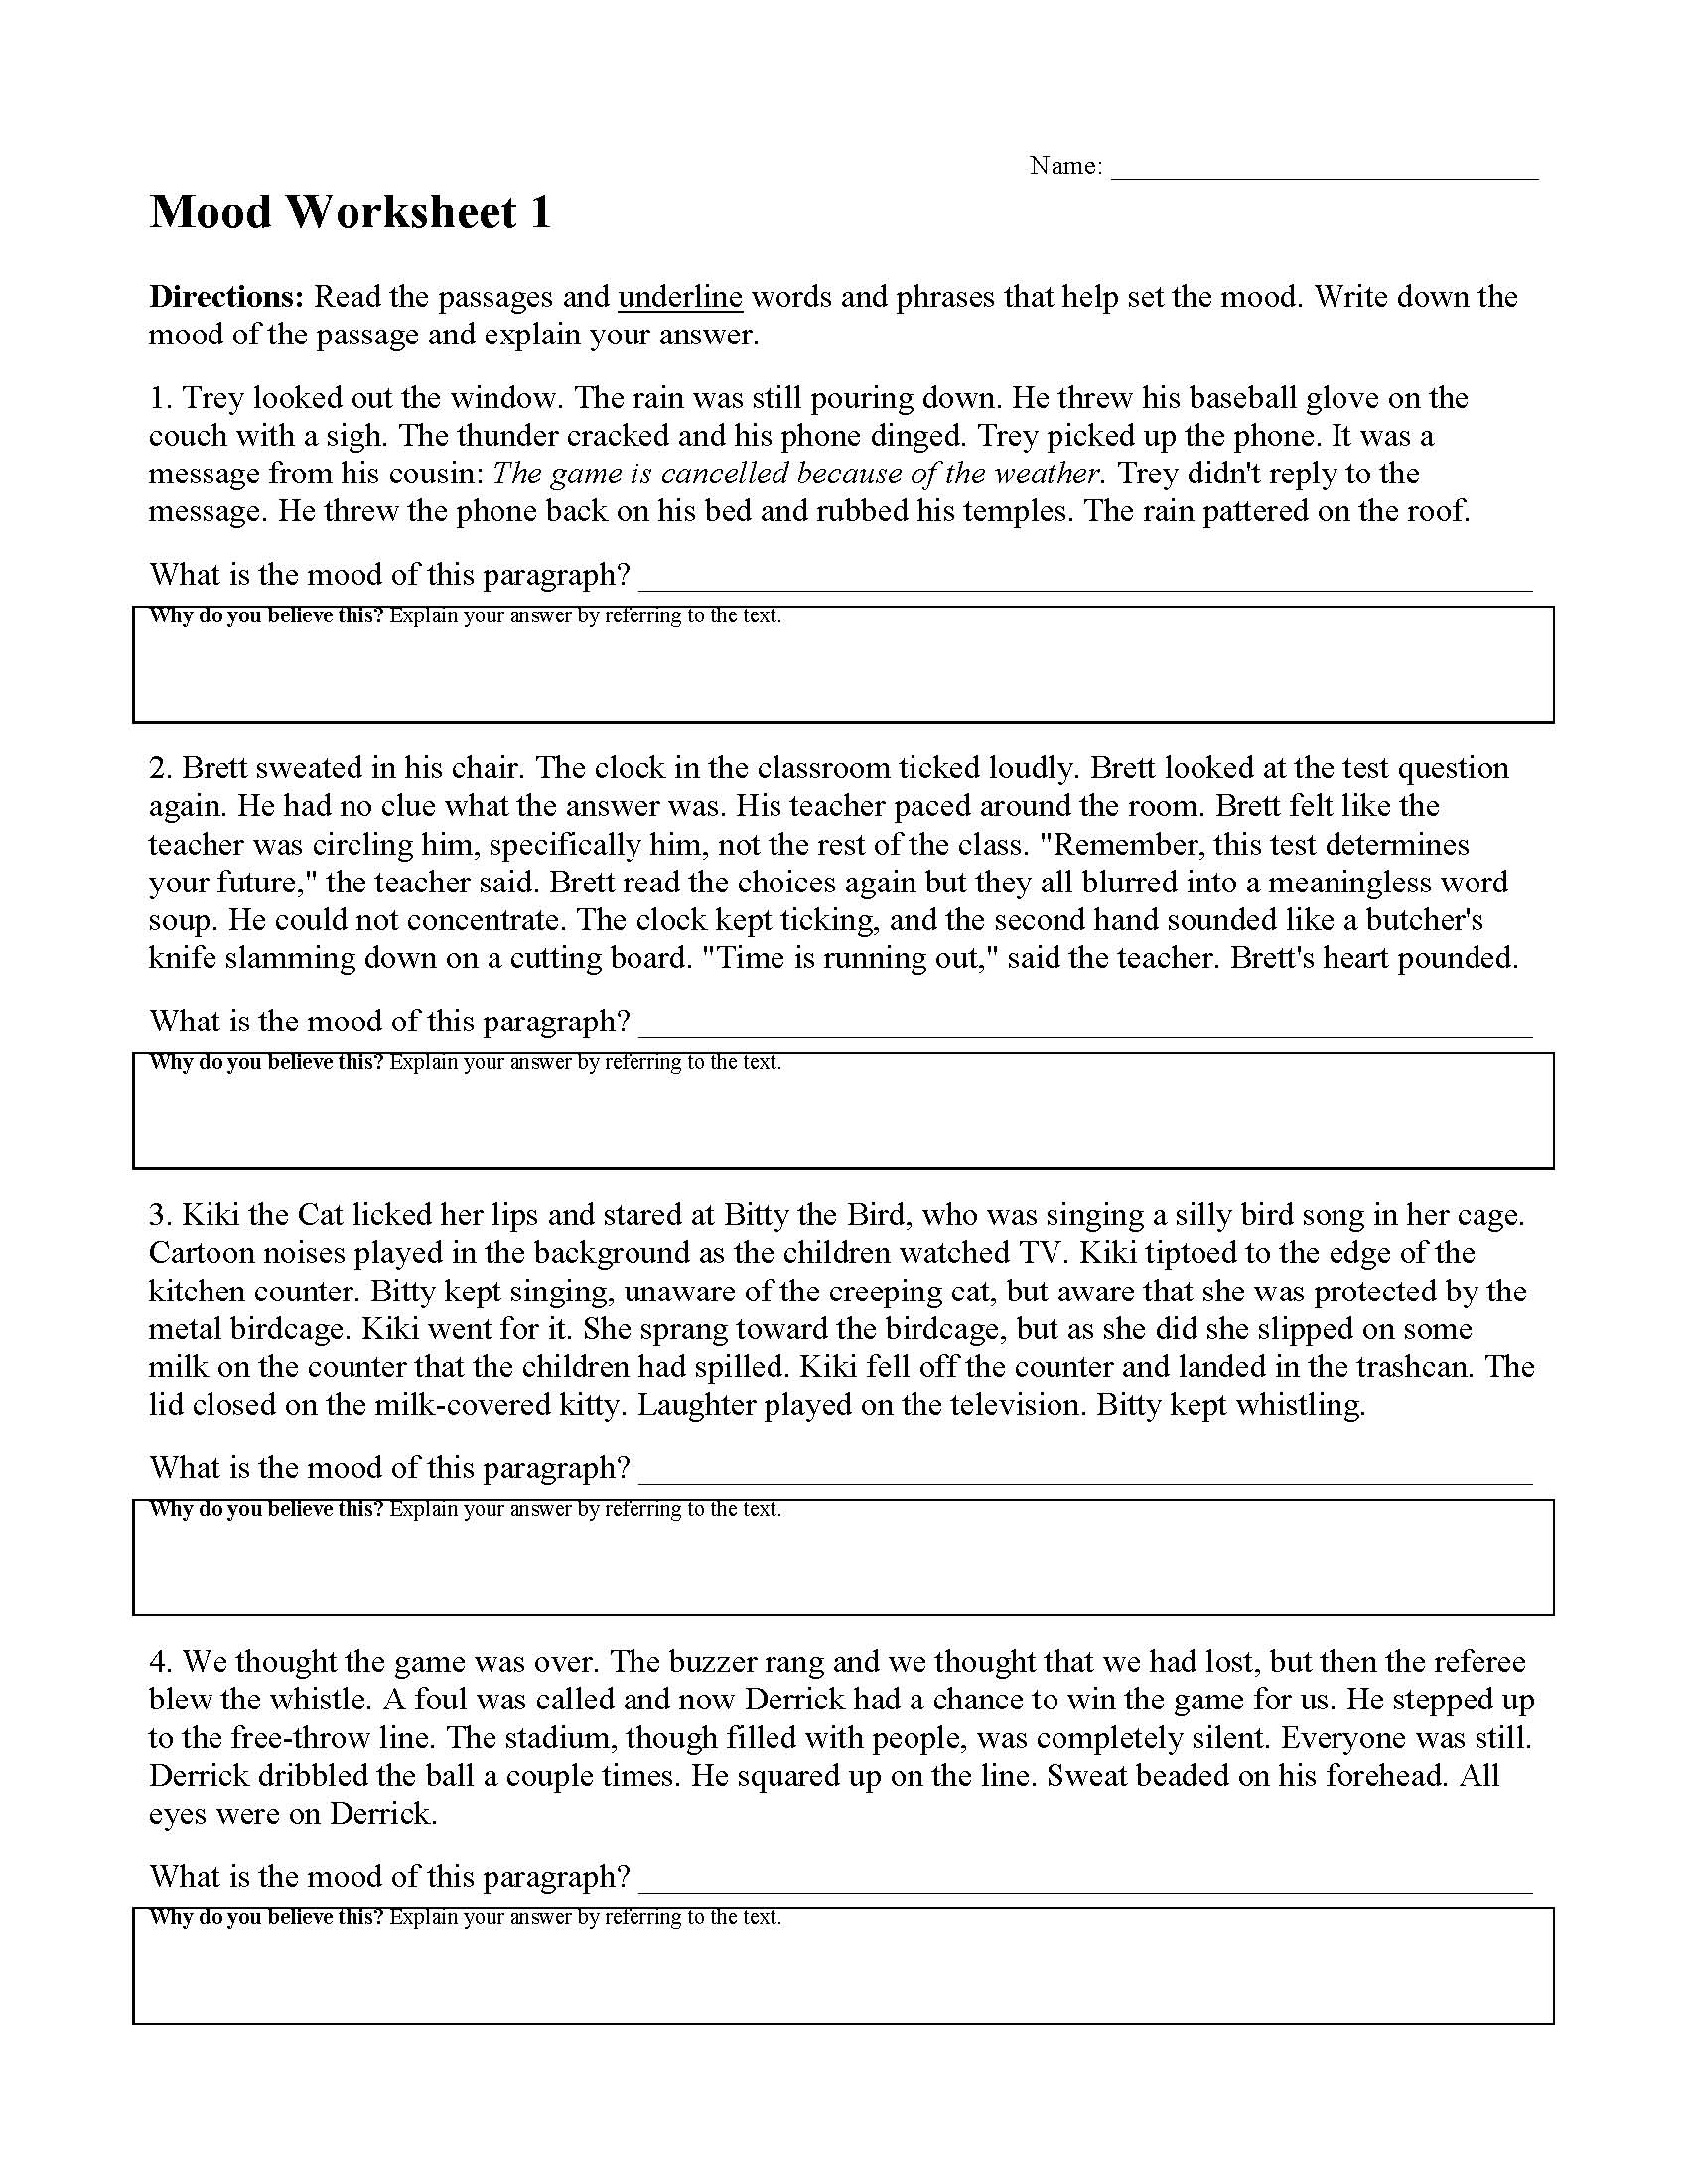 Mood Worksheet 1